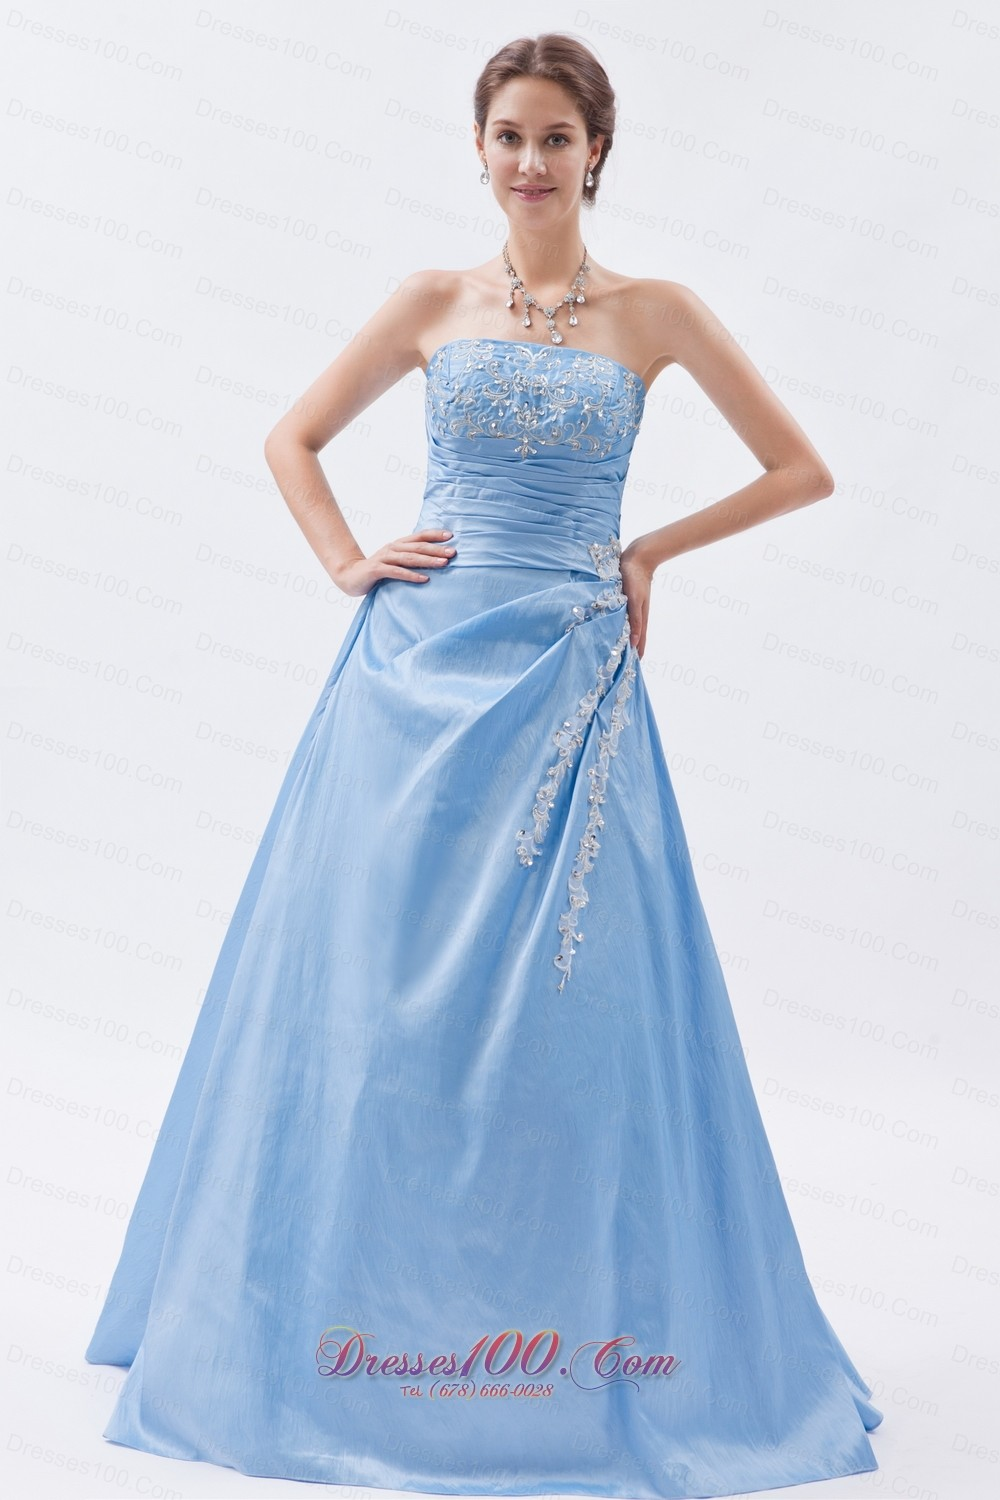 Baby Blue Appliques Prom Dress Sheath Cheap US$133 23